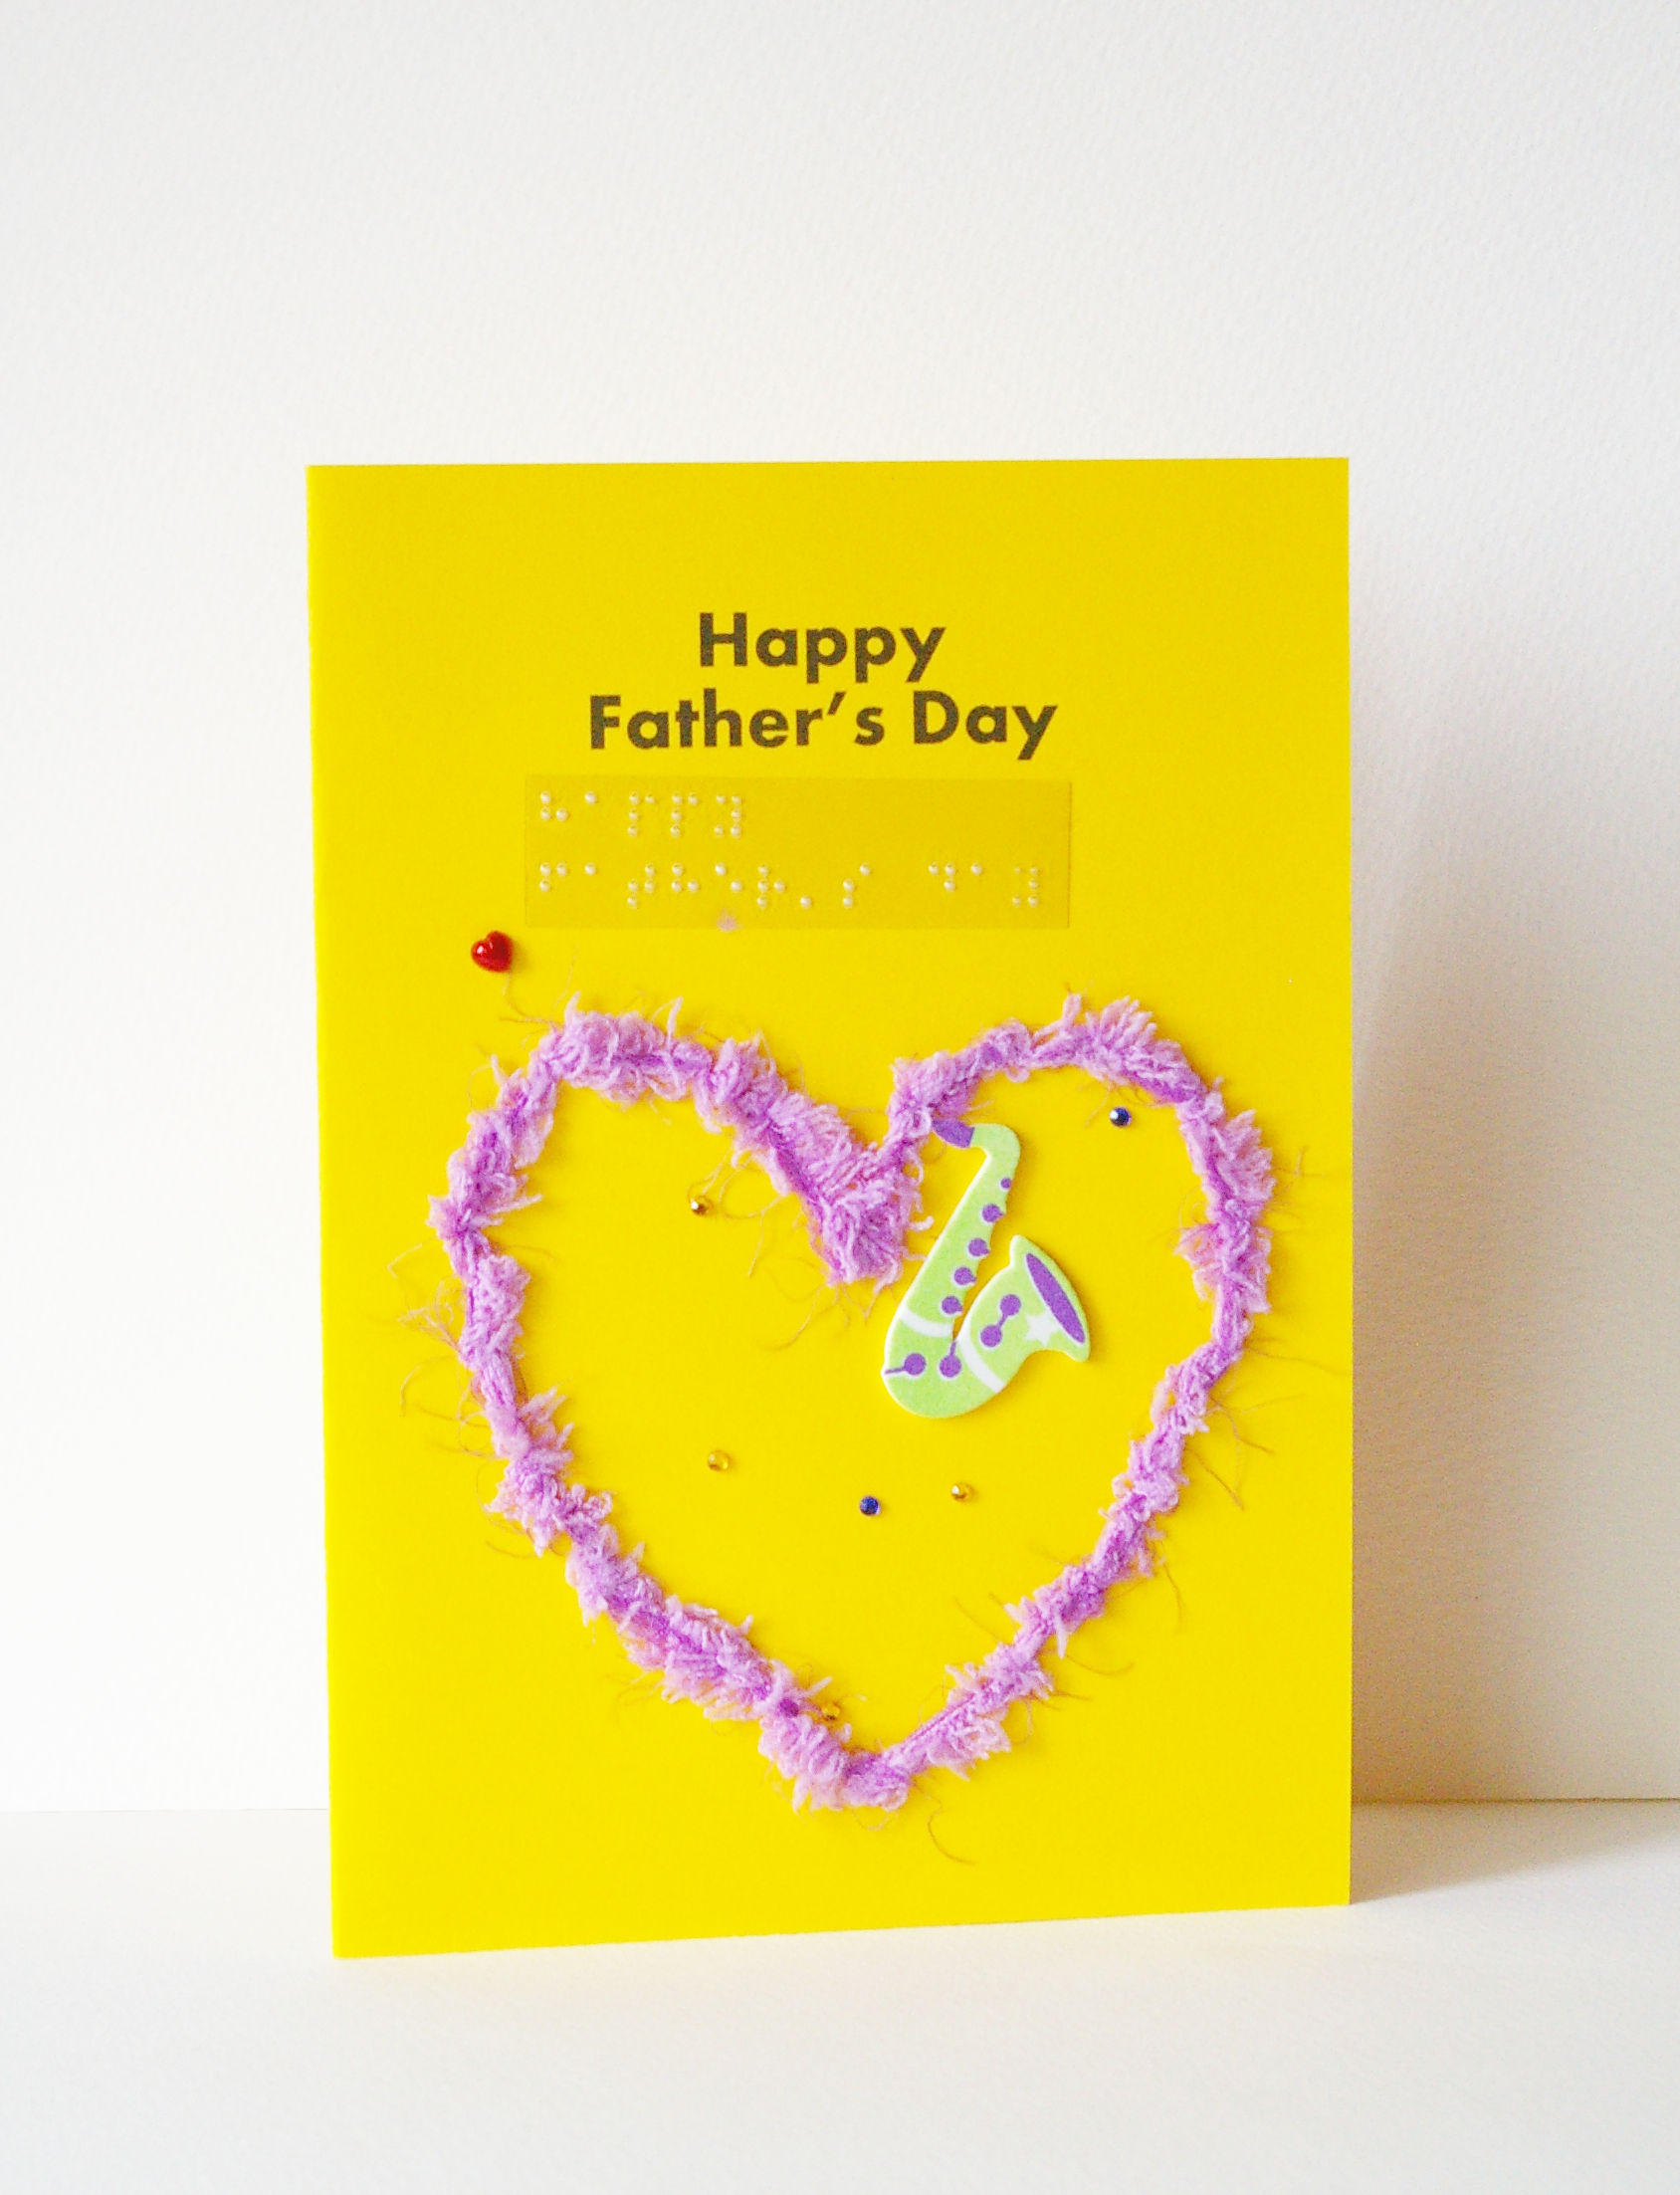 fluffy lilac heart happy father's day card with musical instrument sticker and tiny red hearts